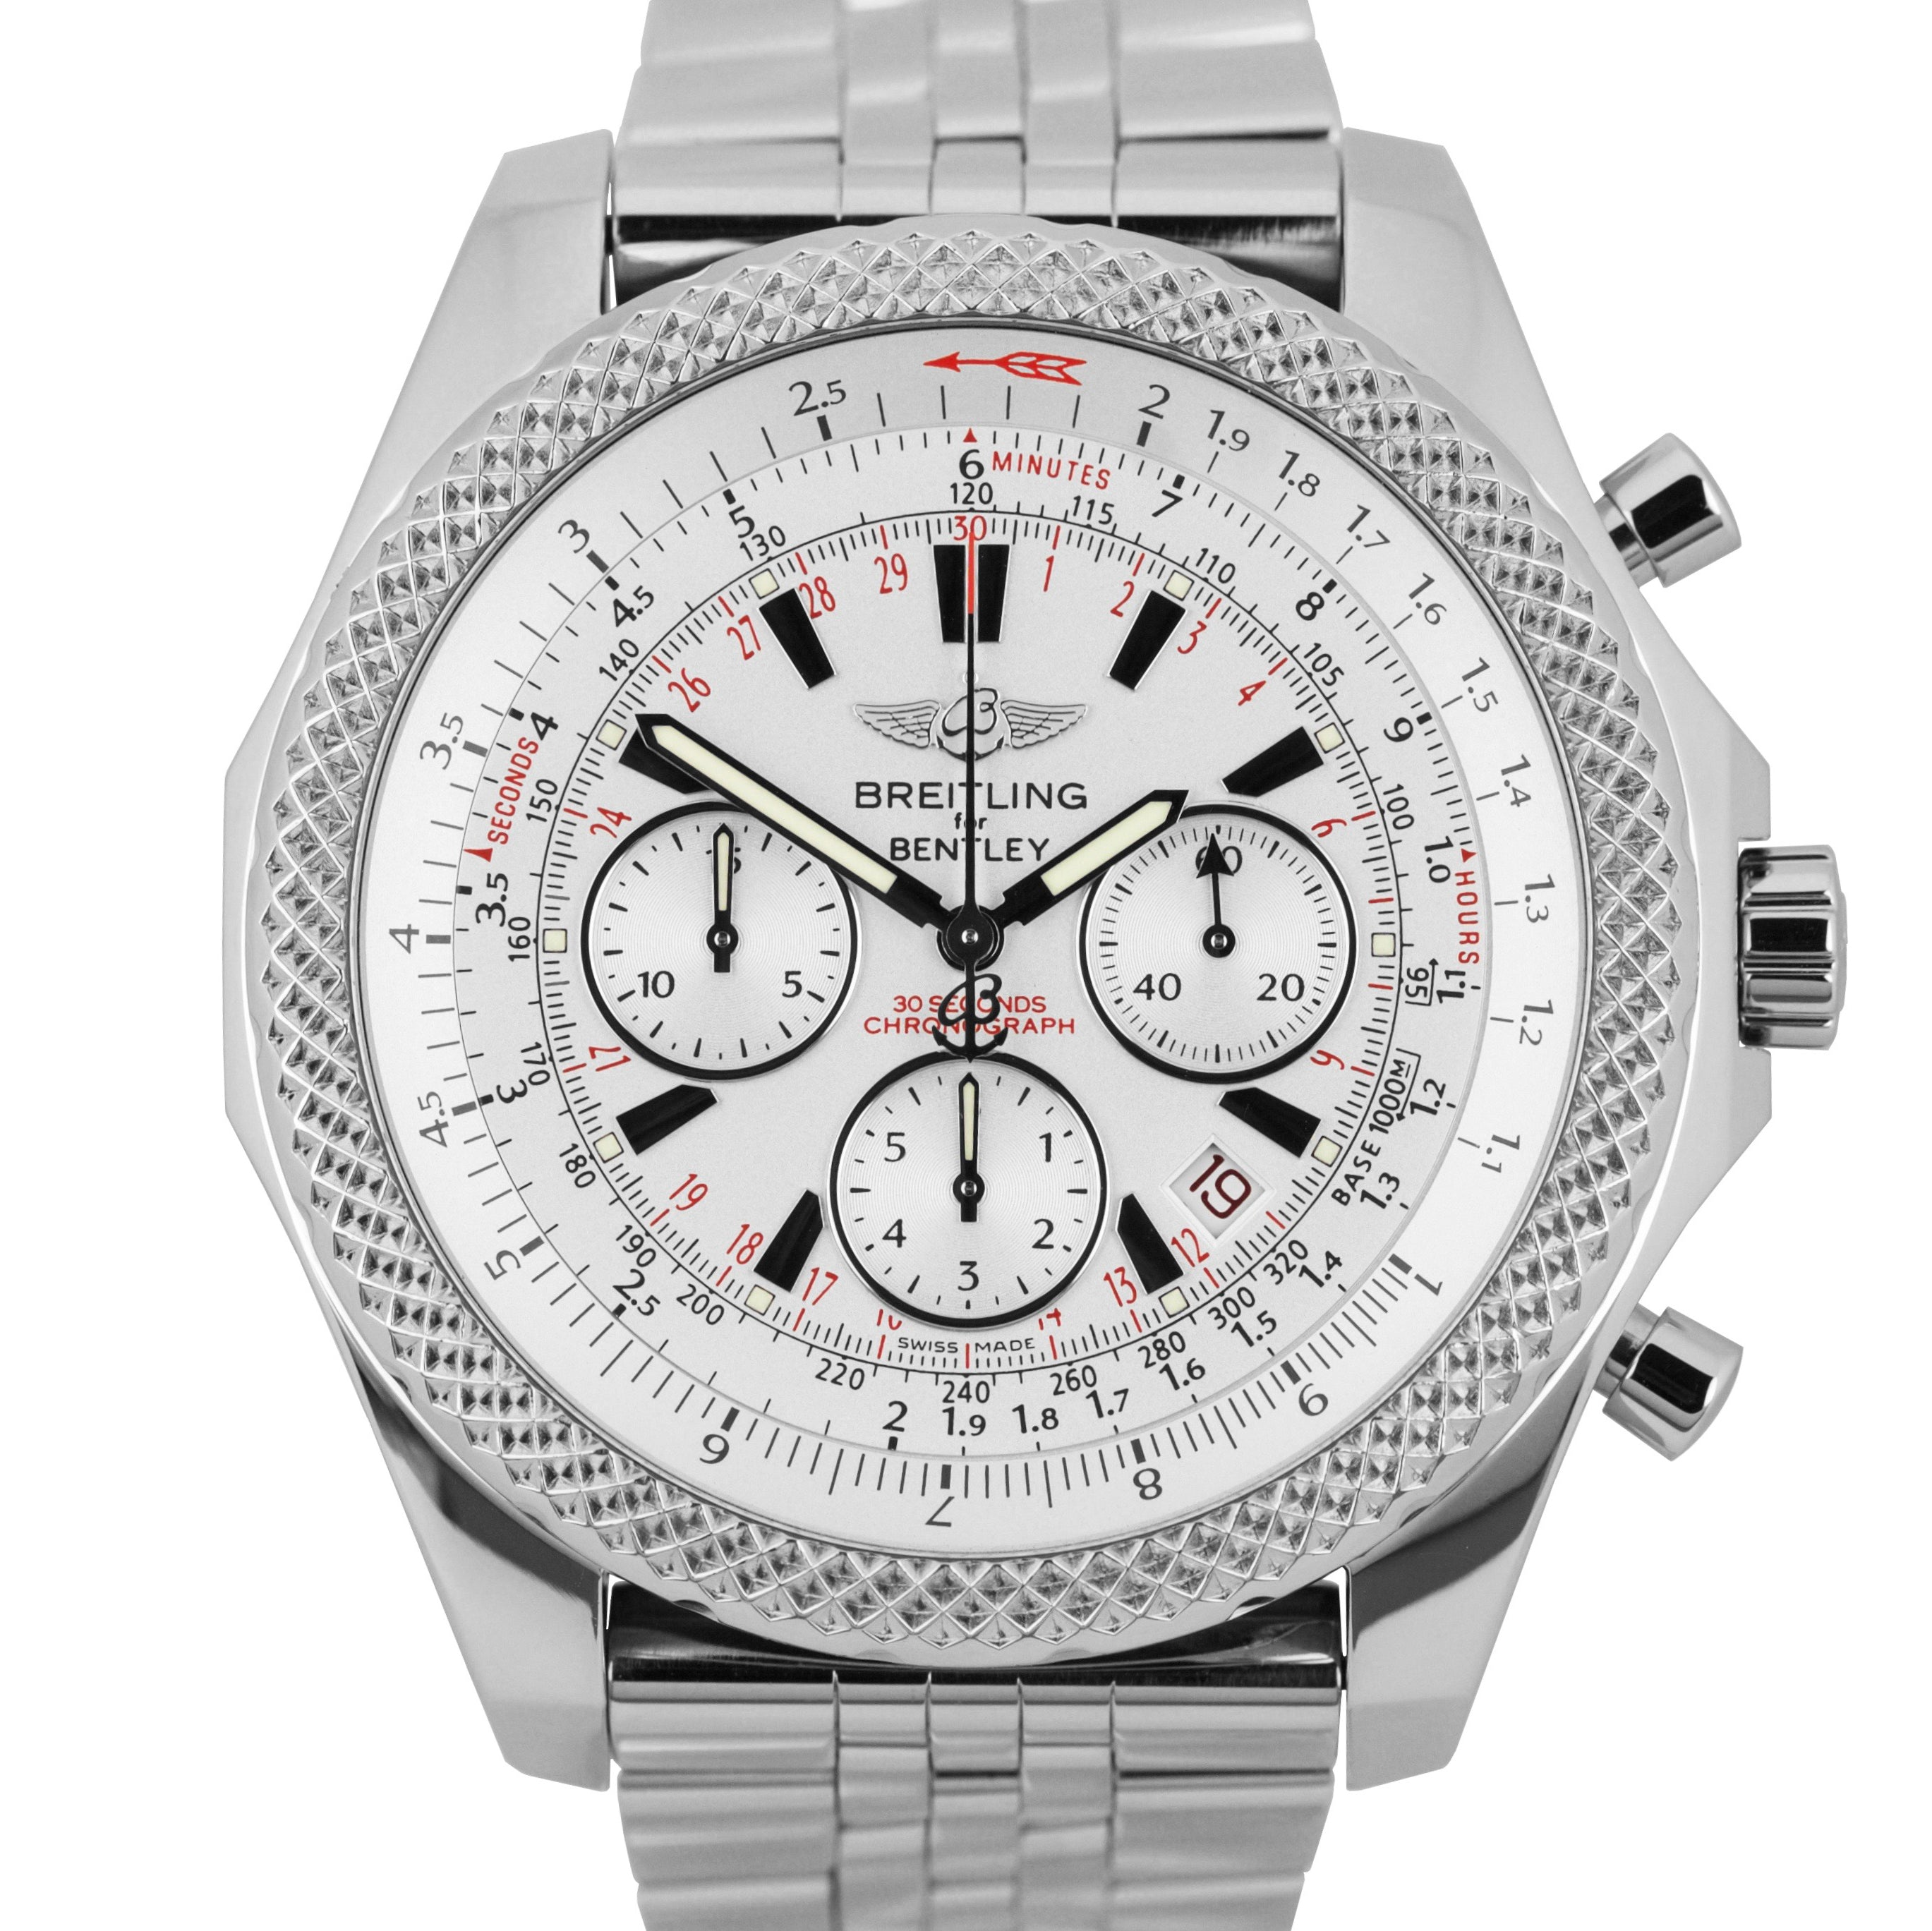 Breitling Bentley 48mm Stainless Steel Silver Chronograph Date Auto Watch A25364